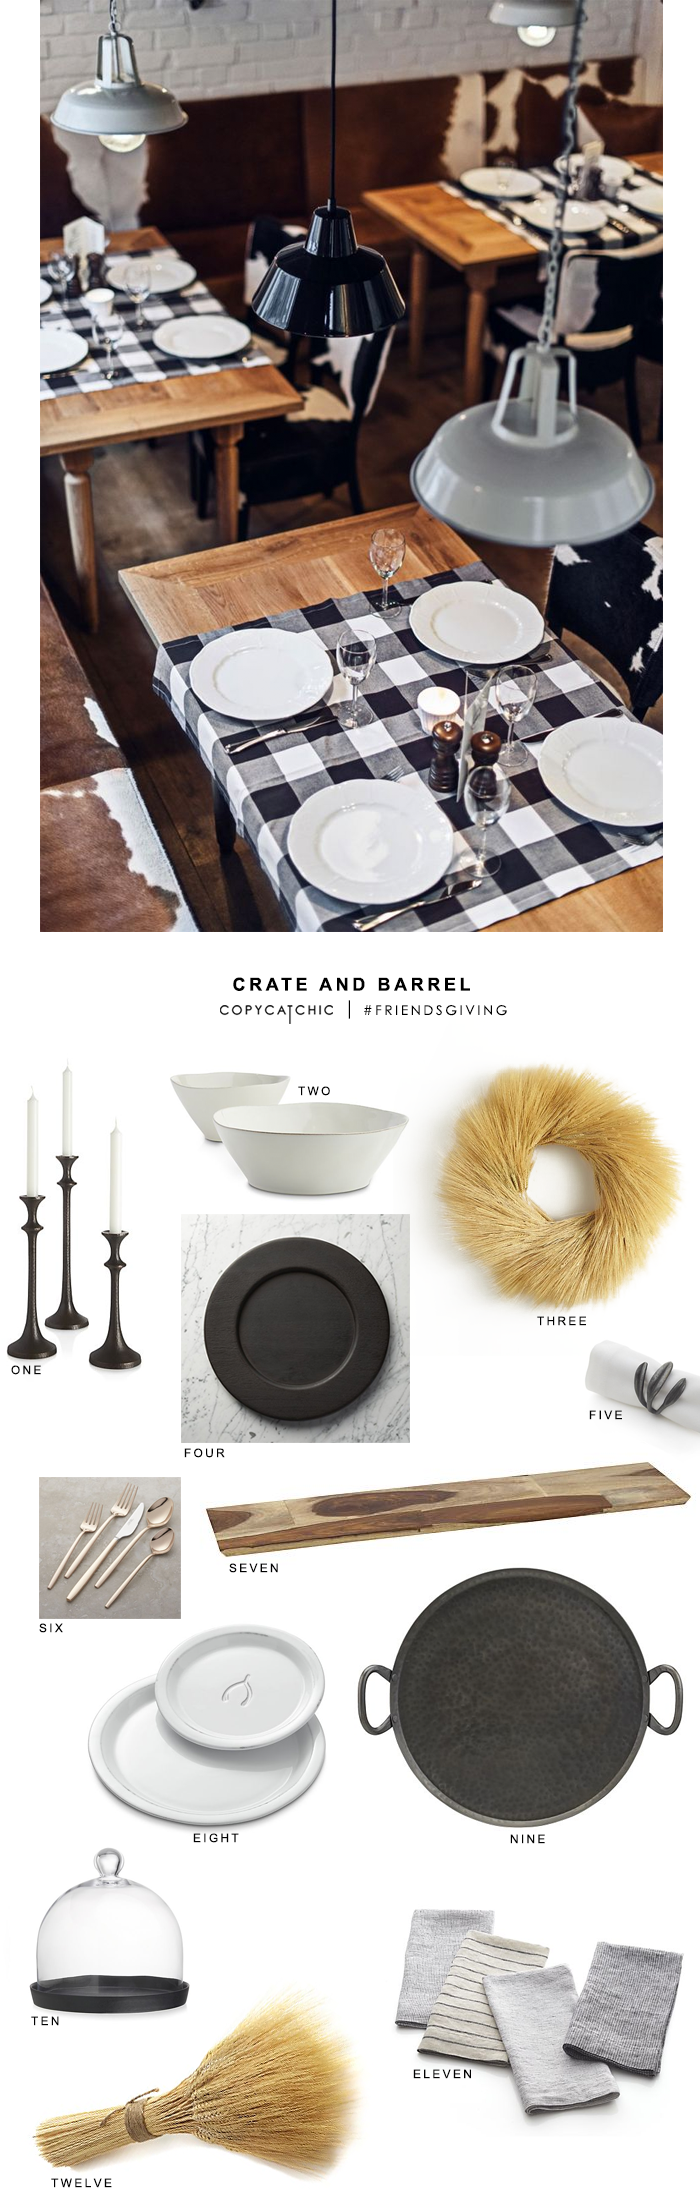 Copy Cat Chic Friendsgiving with Crate and Barrel